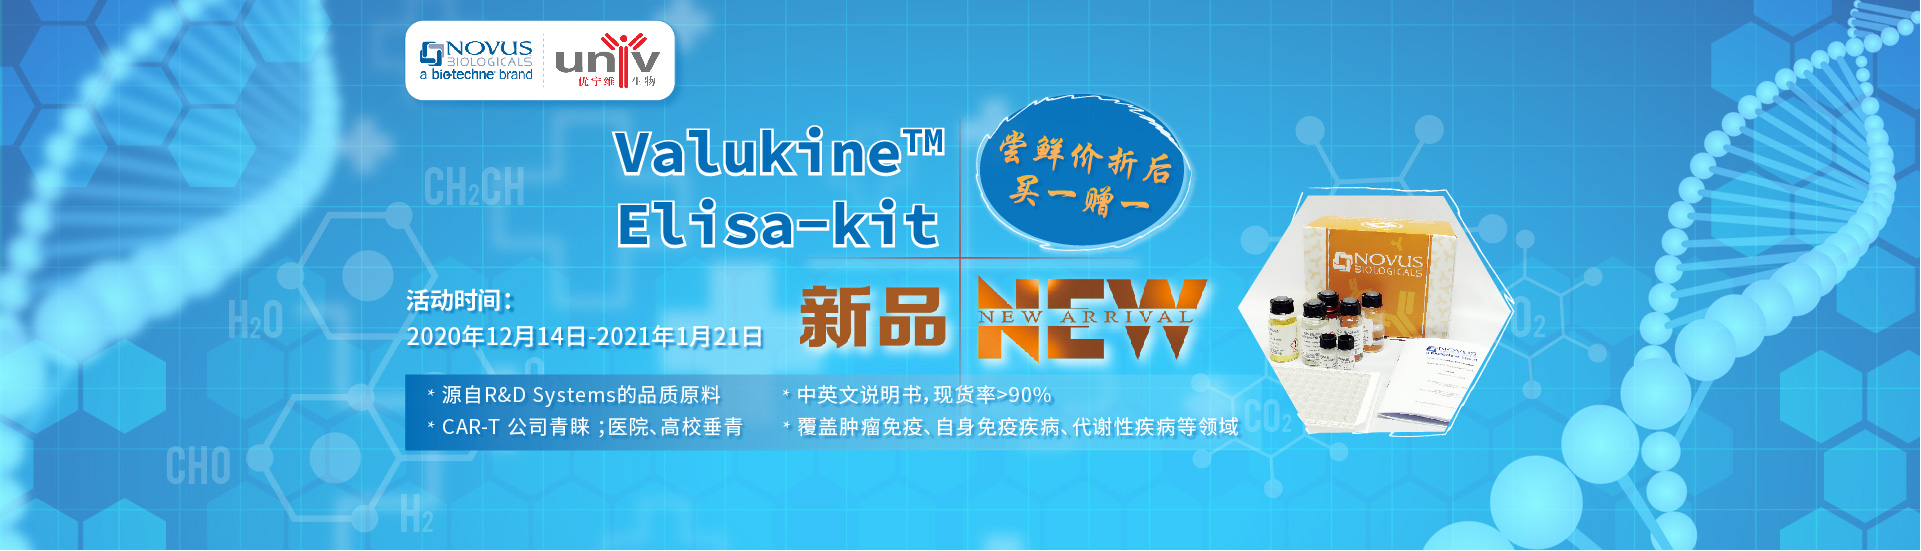 Valukine Elisa-kit 新品迎新年,折后买一送一